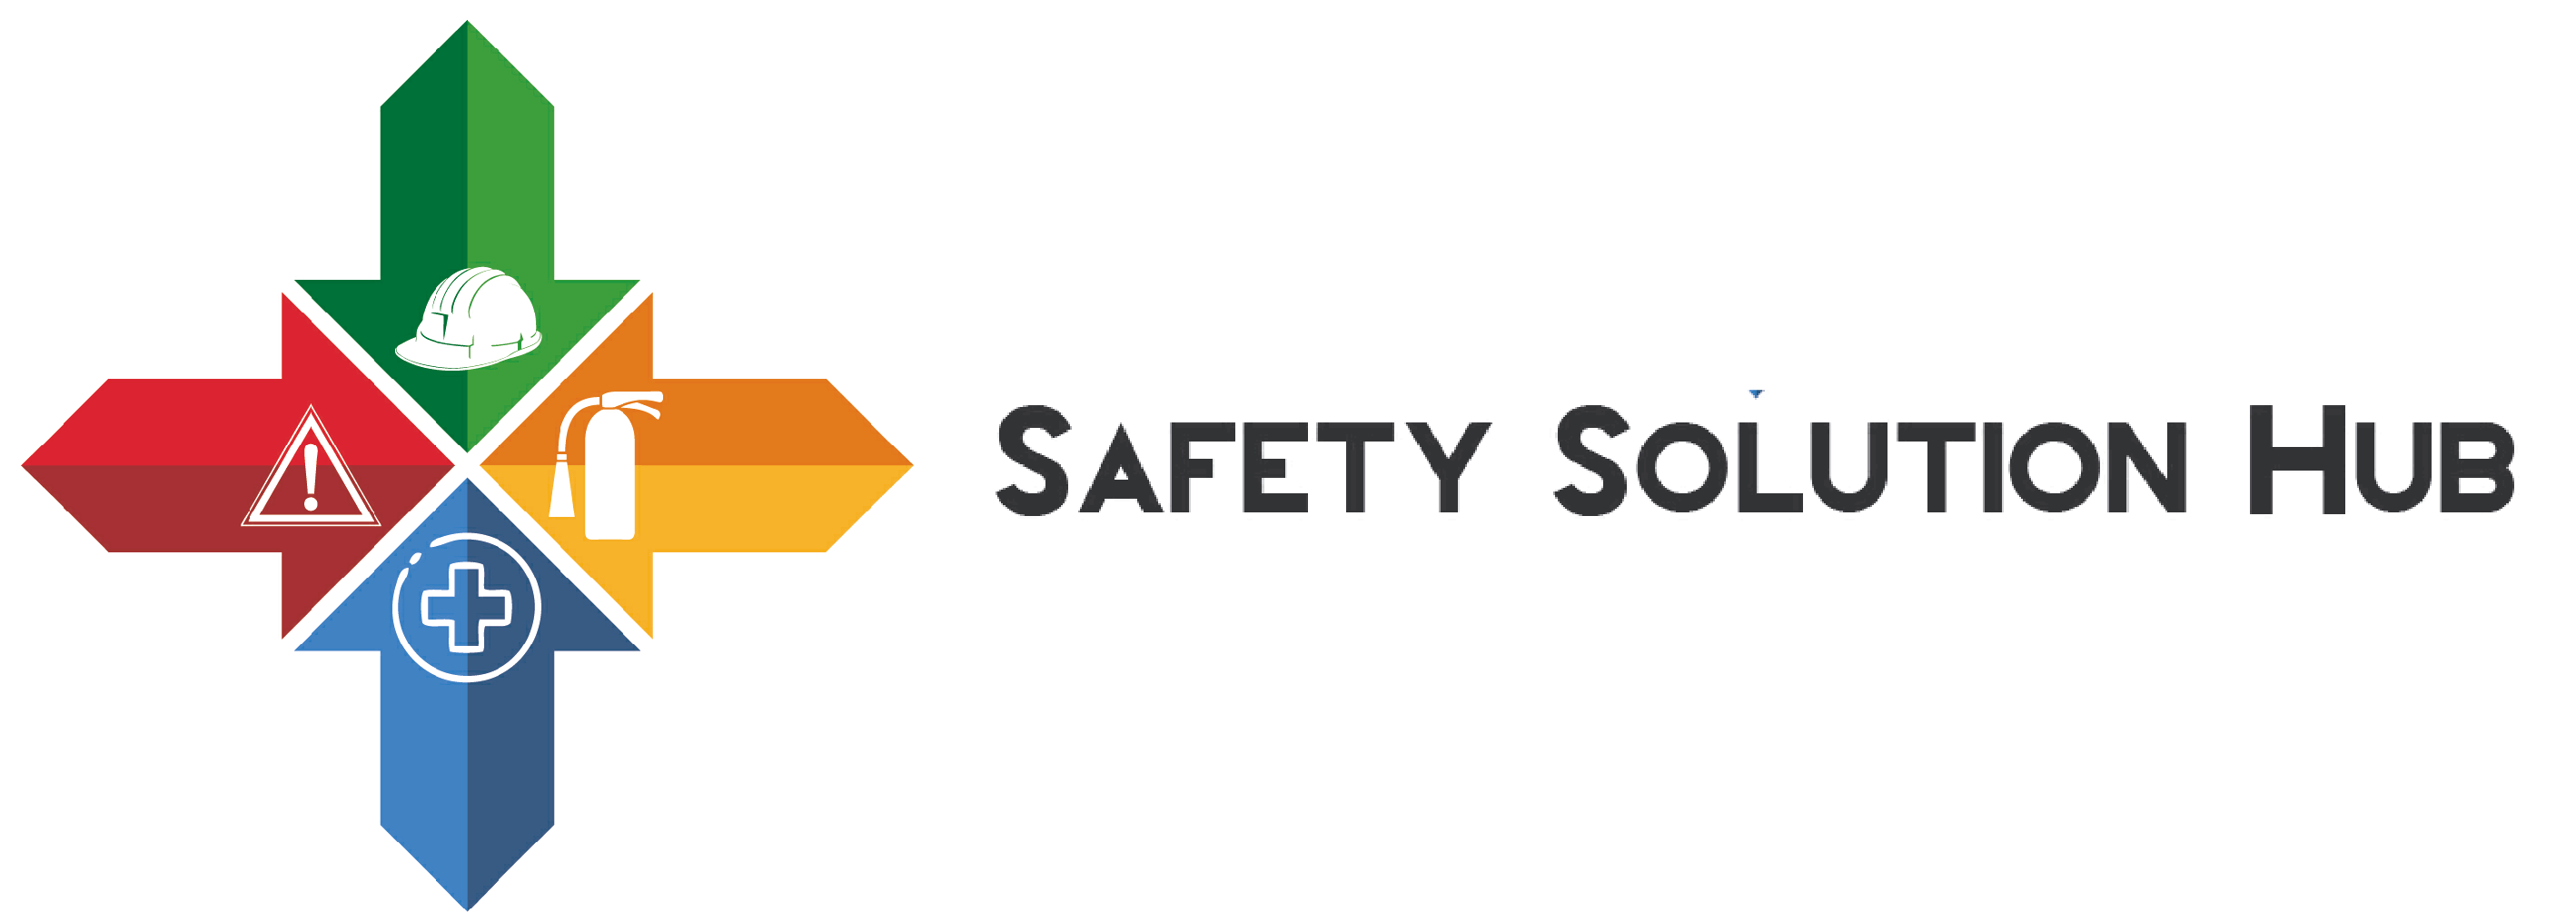 Safety Solution Hub